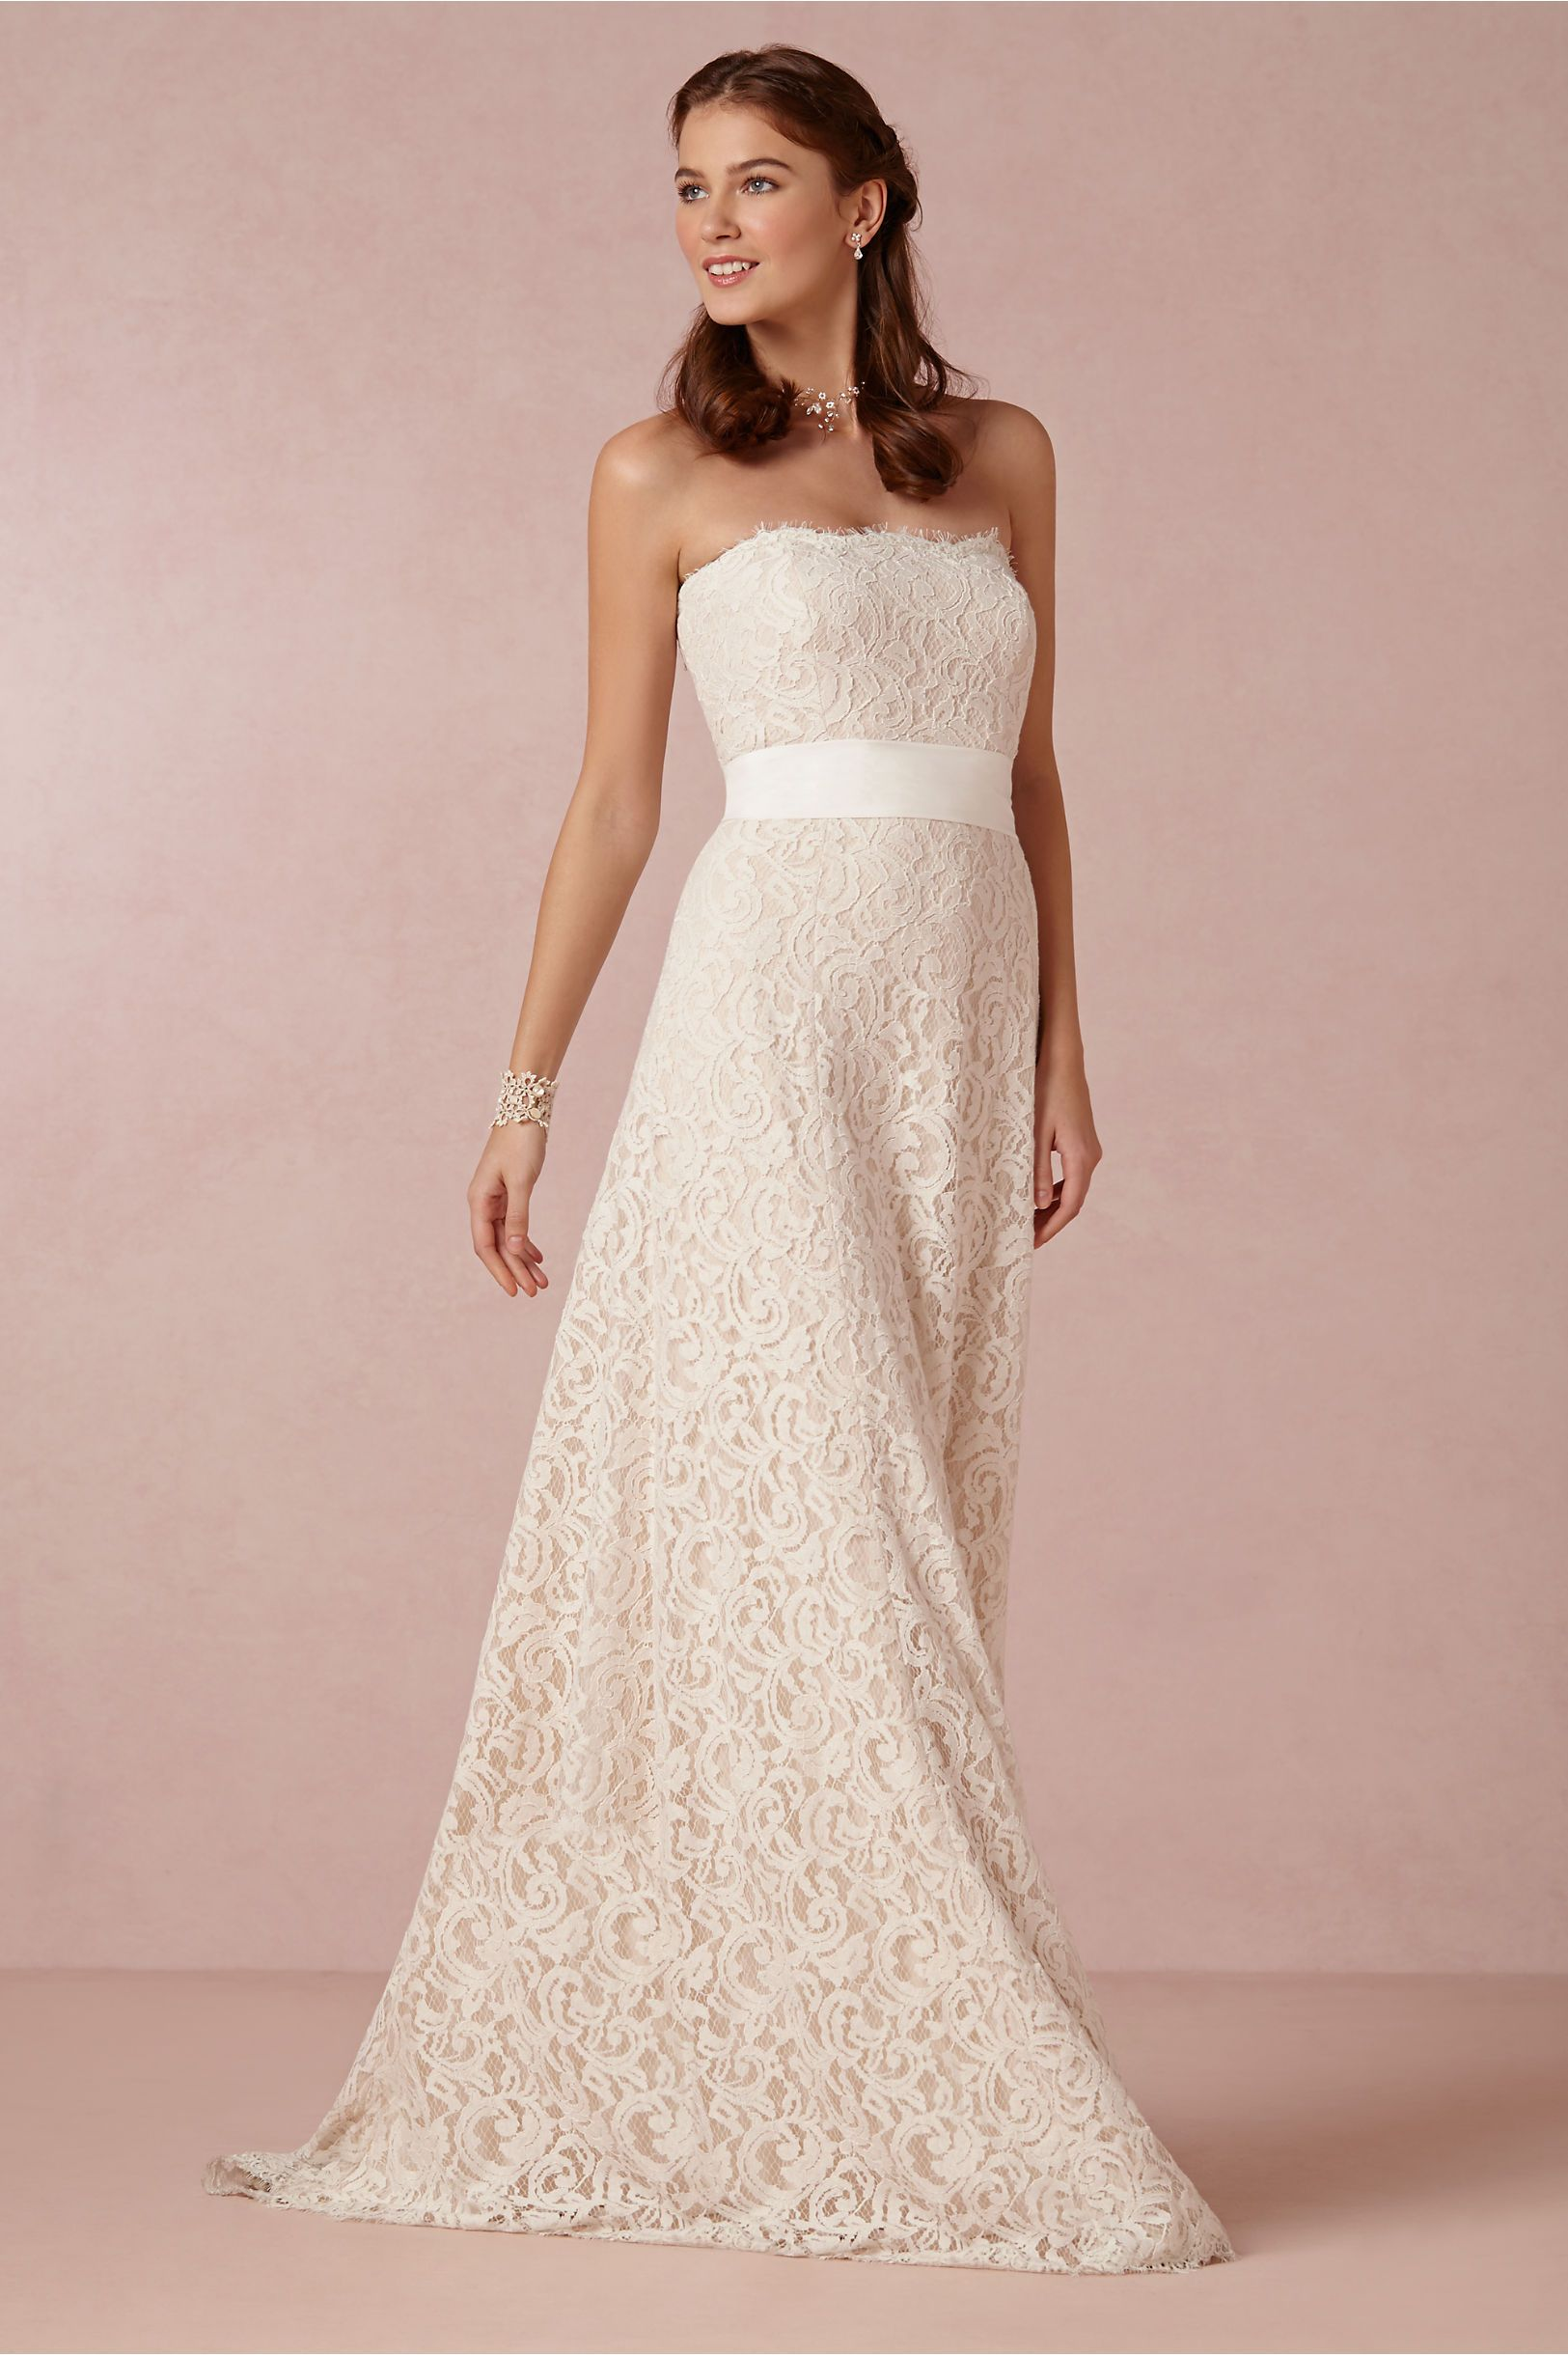 50 Incredible Non Traditional Wedding Dresses Under 500